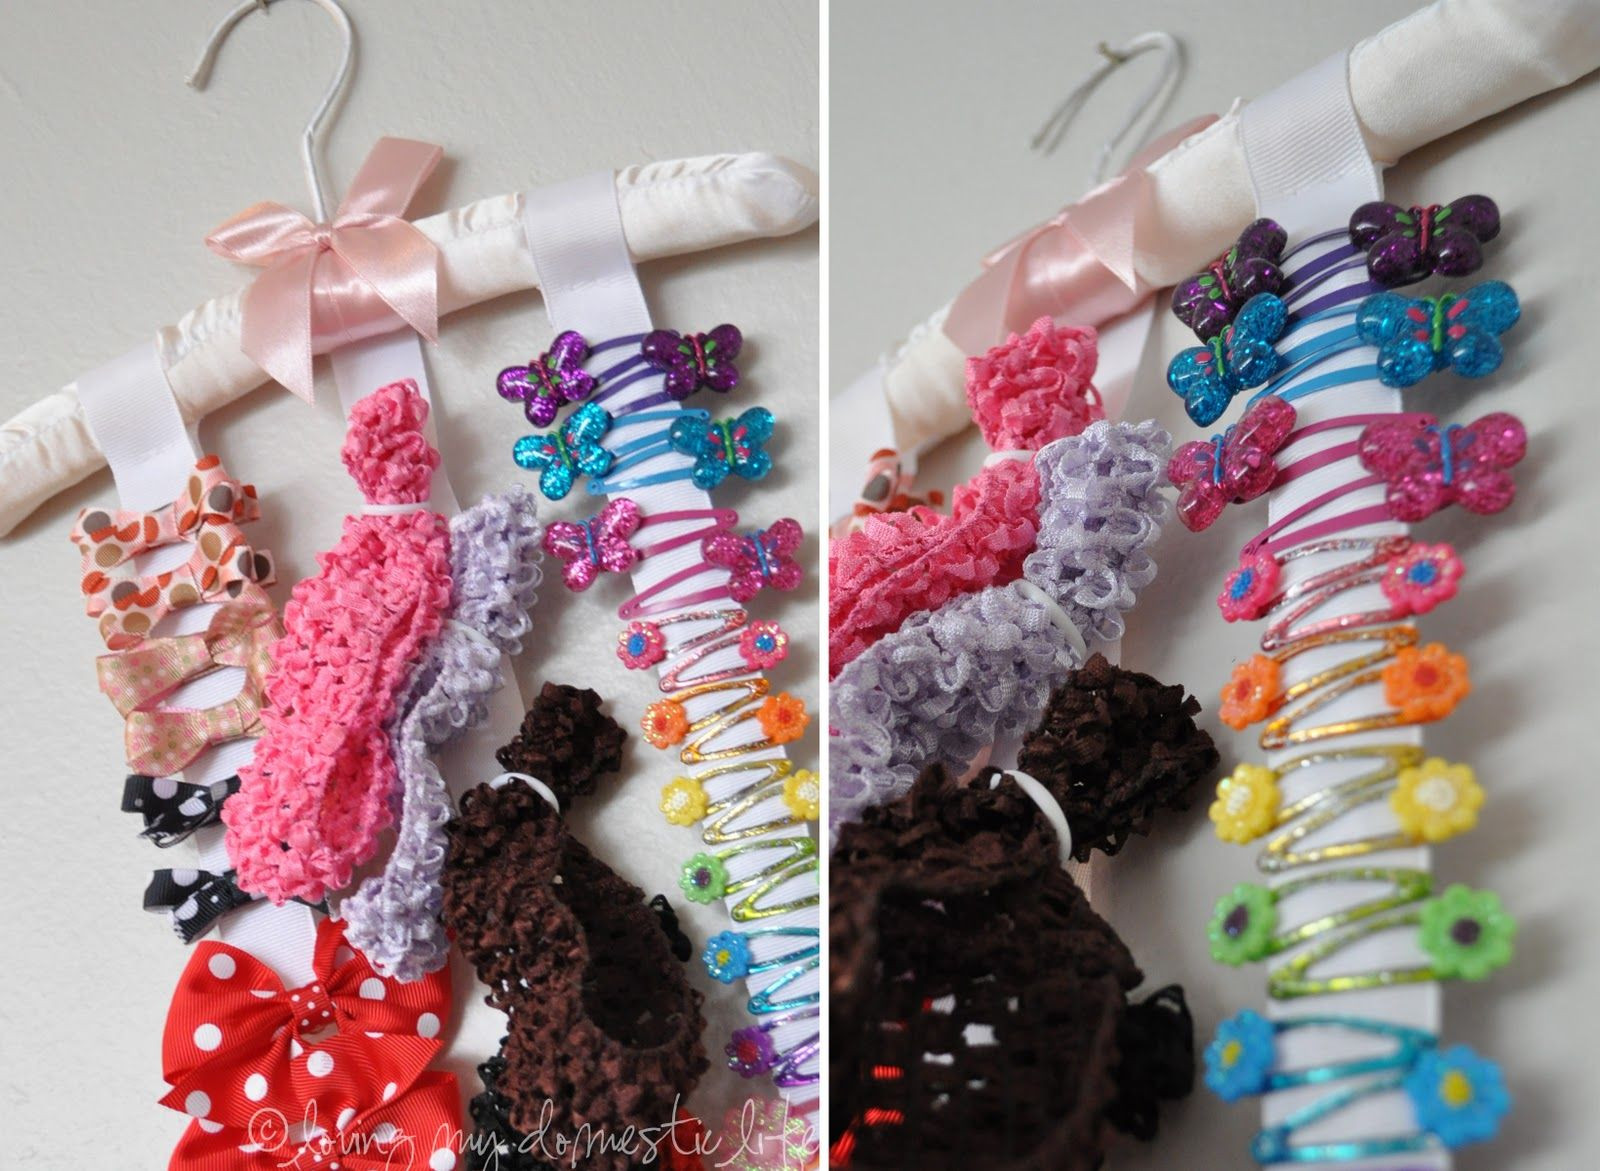 Best ideas about Hair Accessories Organizer DIY . Save or Pin Loving My Domestic Life Hair Accessory Organizer Now.